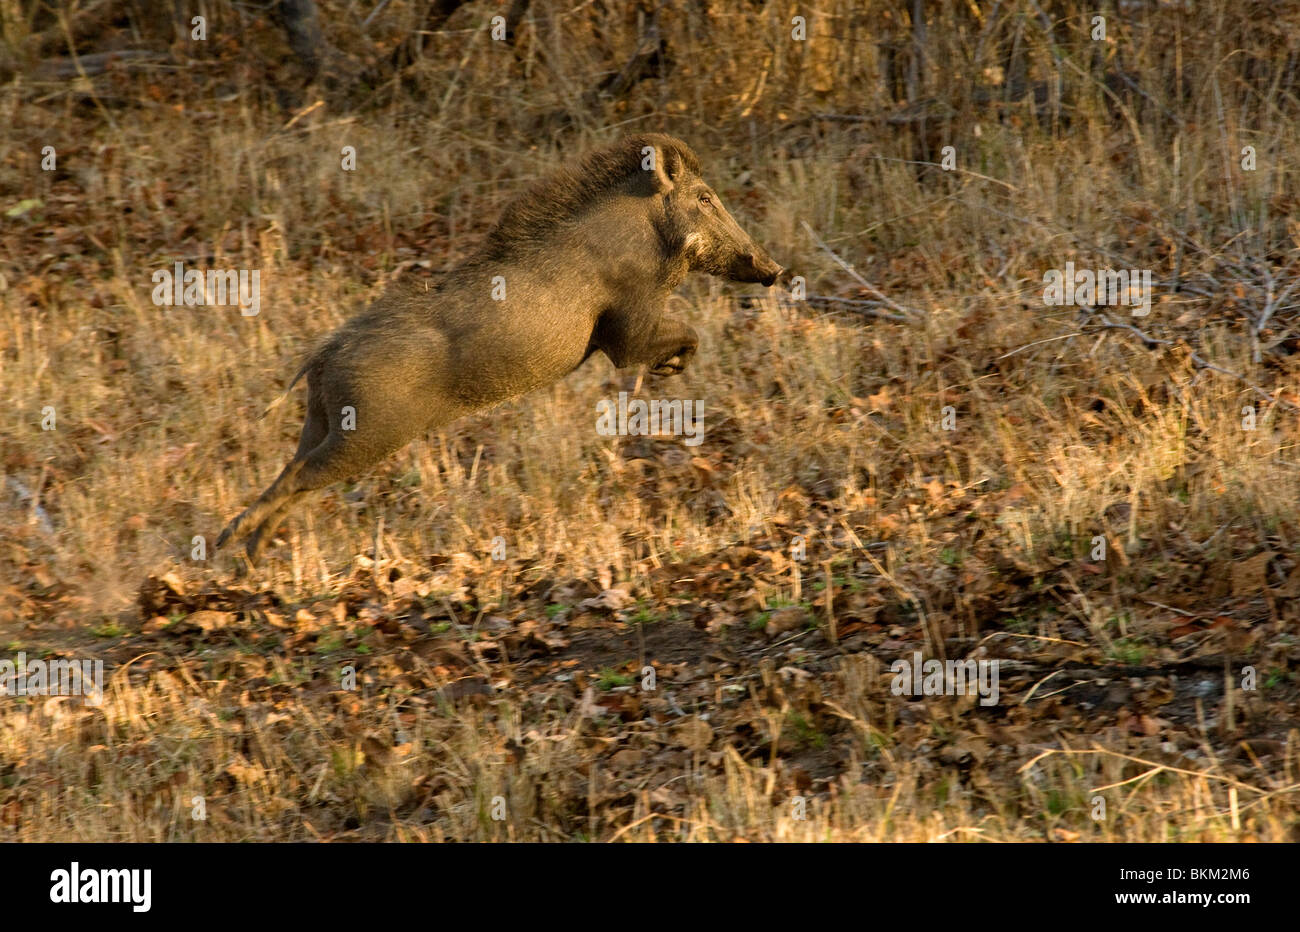 Wild boar flees from alarm calls in response to tigers Kanha NP, India - Stock Image